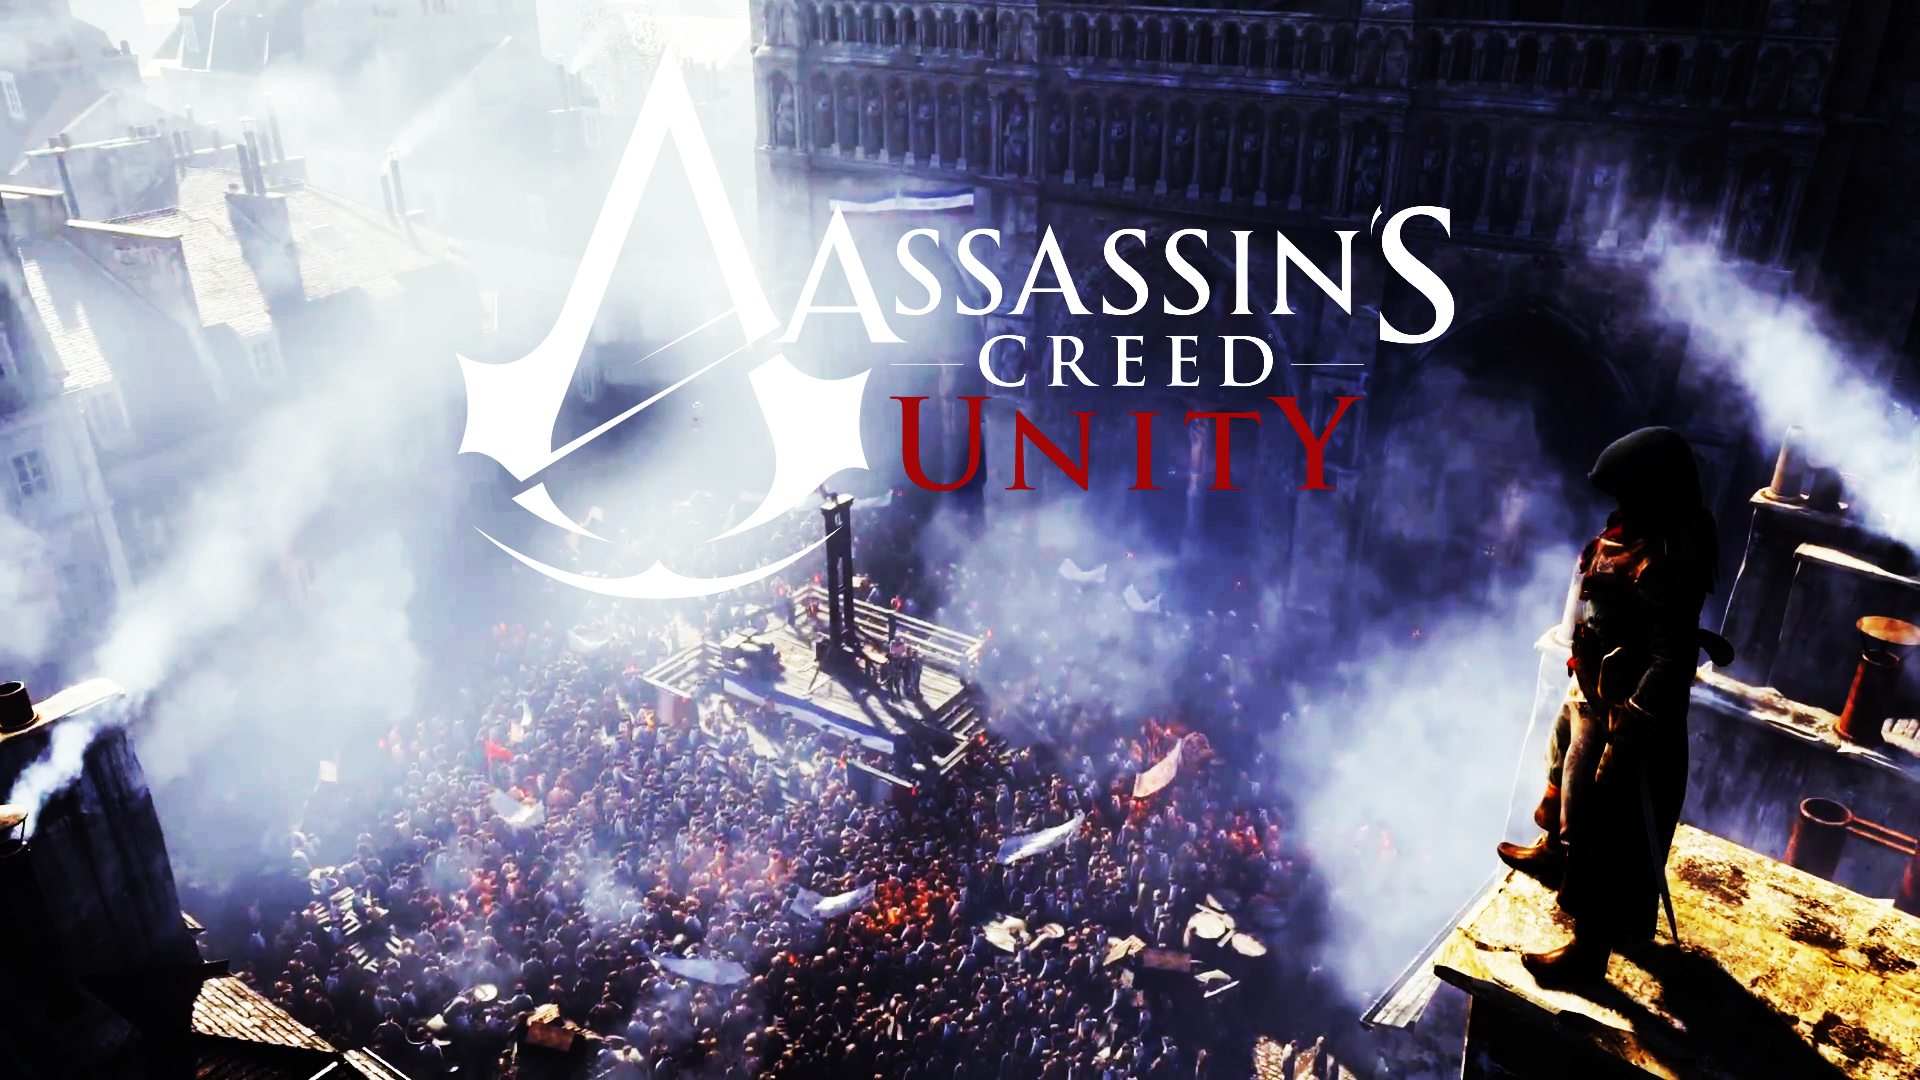 Assassin Creed - Unity Wallpaper